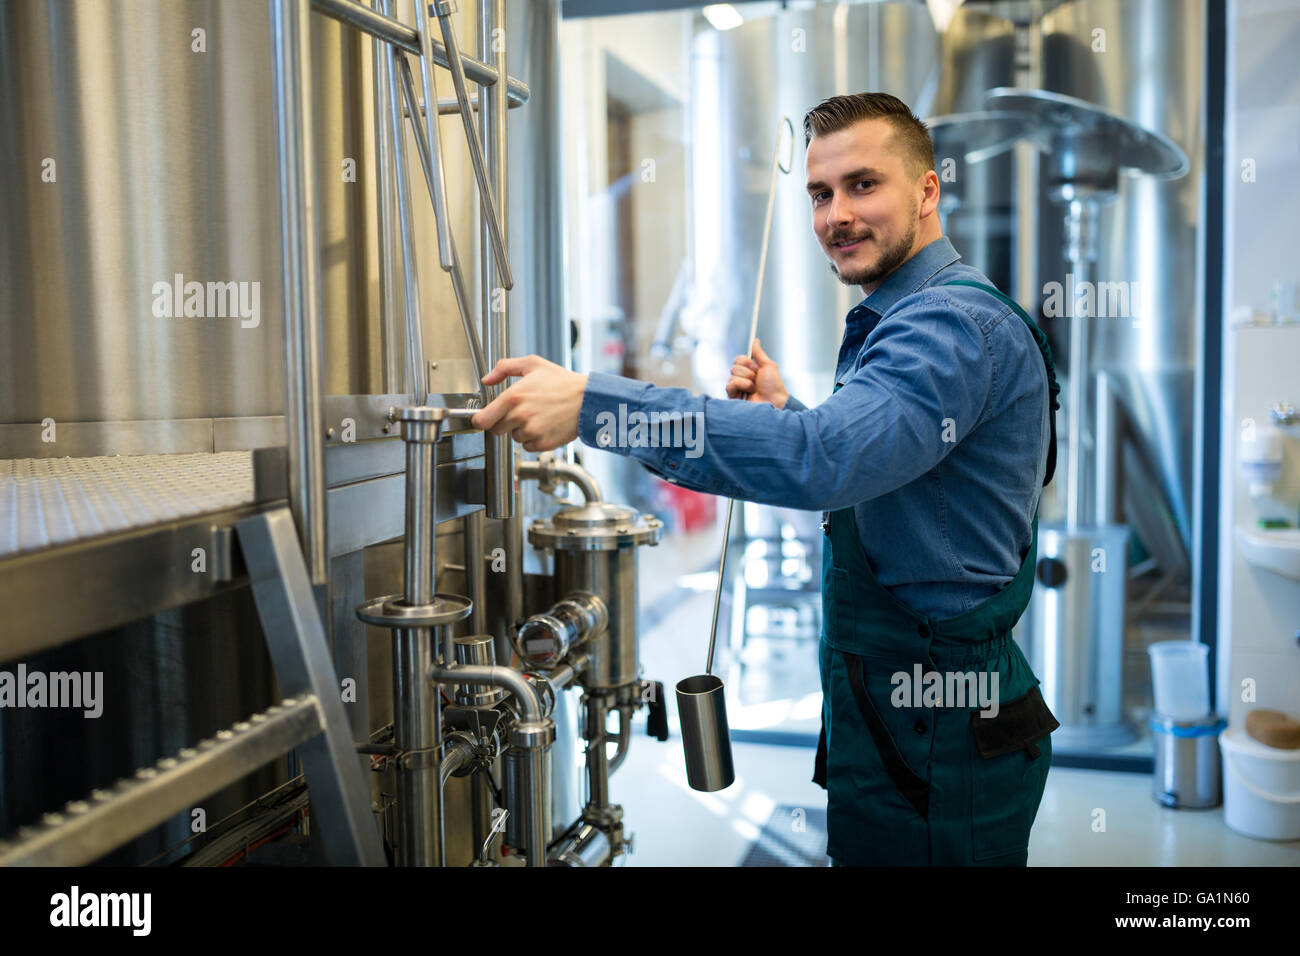 Brewer working at brewery - Stock Image